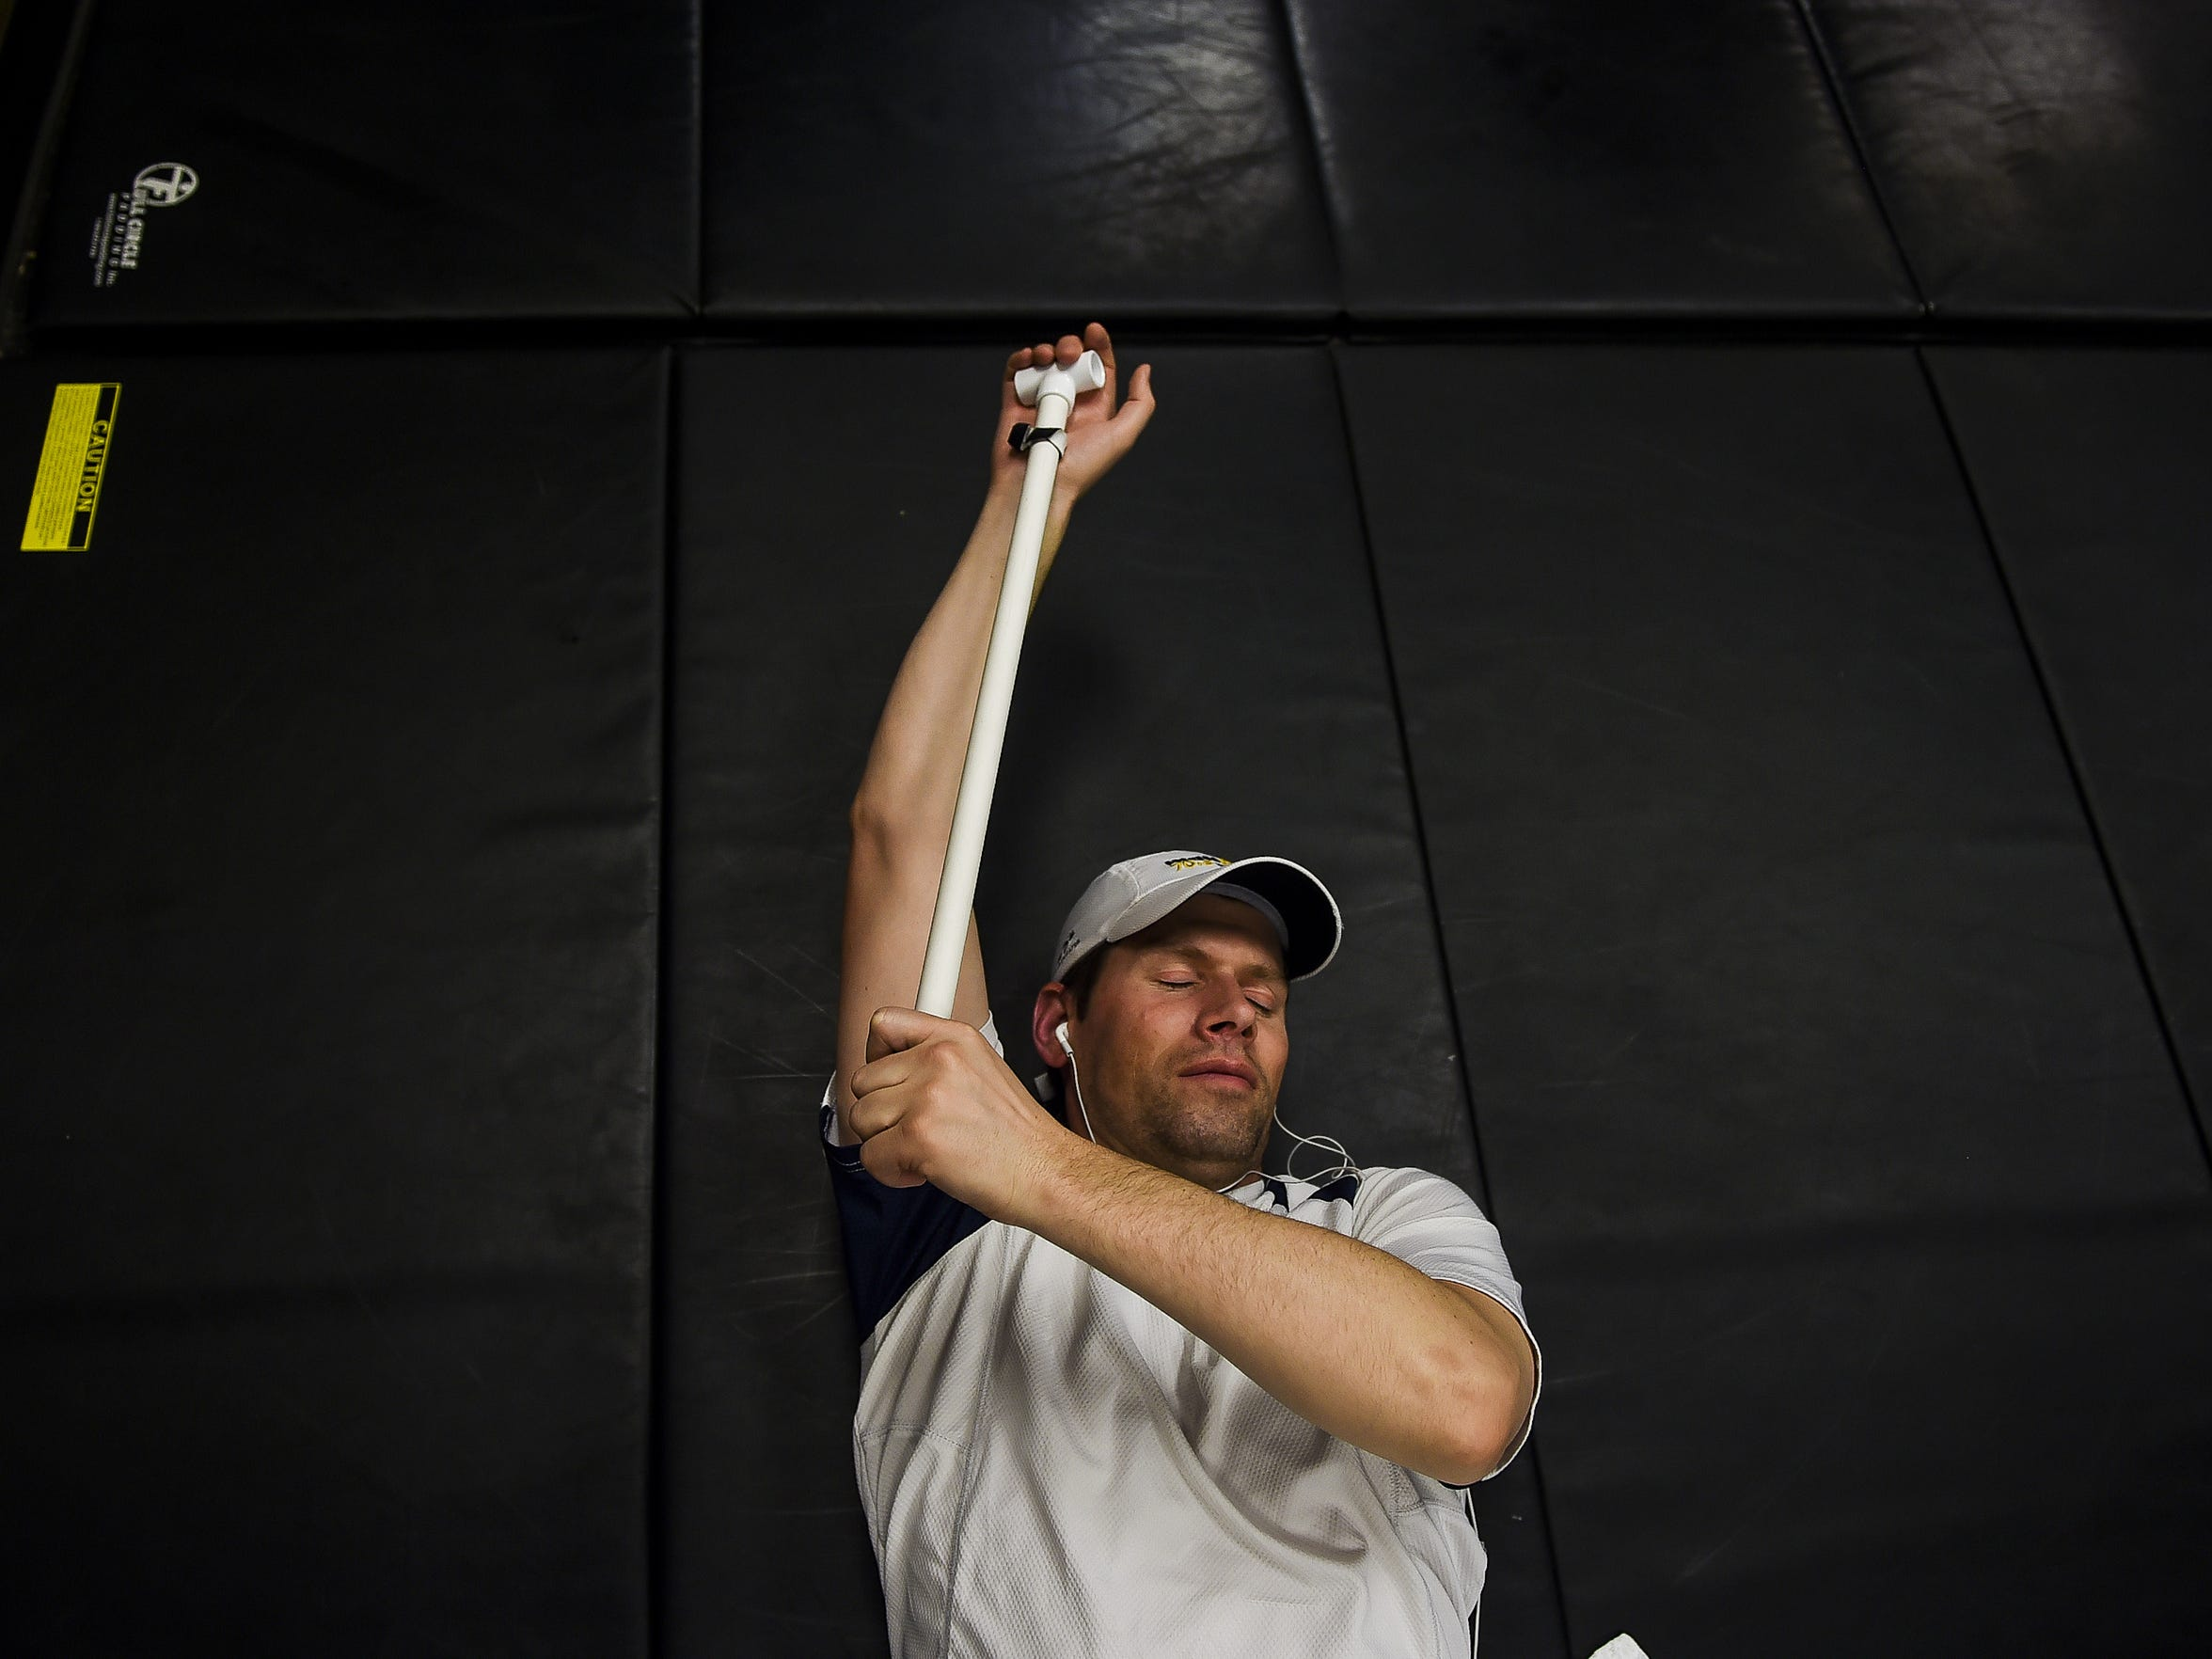 Jeff Wicks uses a PVC pipe to help stretch his shoulder